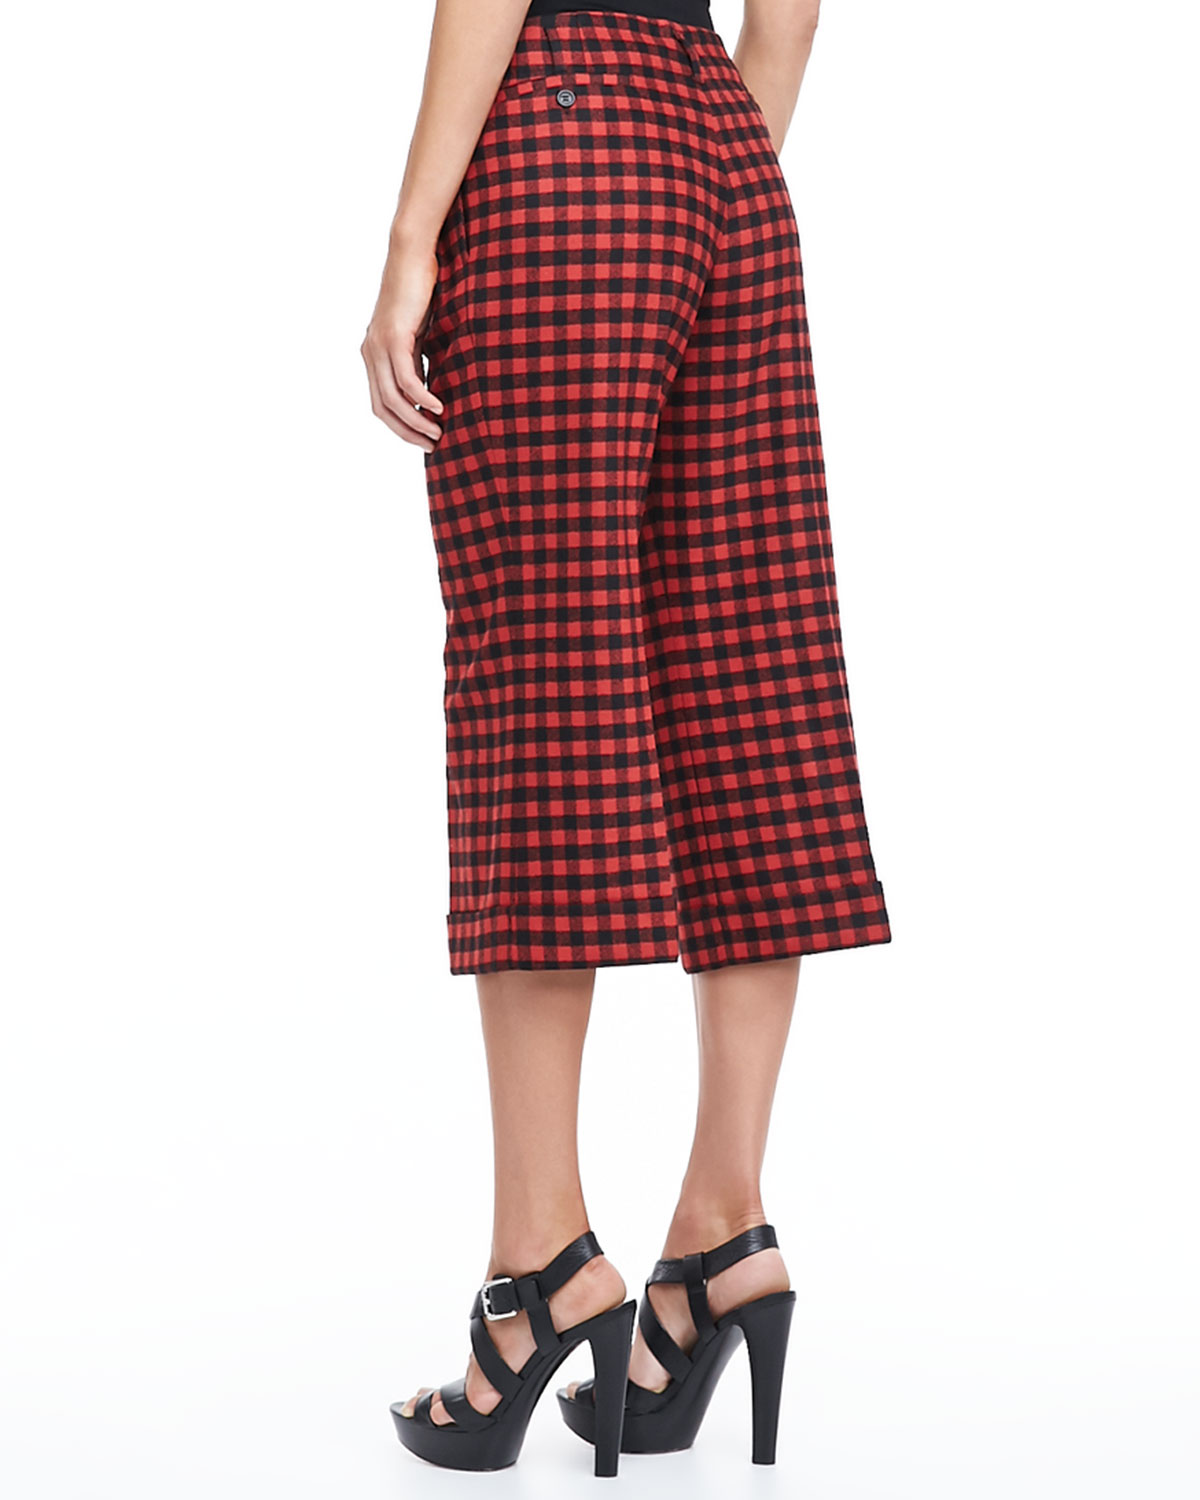 Michael kors Gingham Gaucho Pants in Red | Lyst